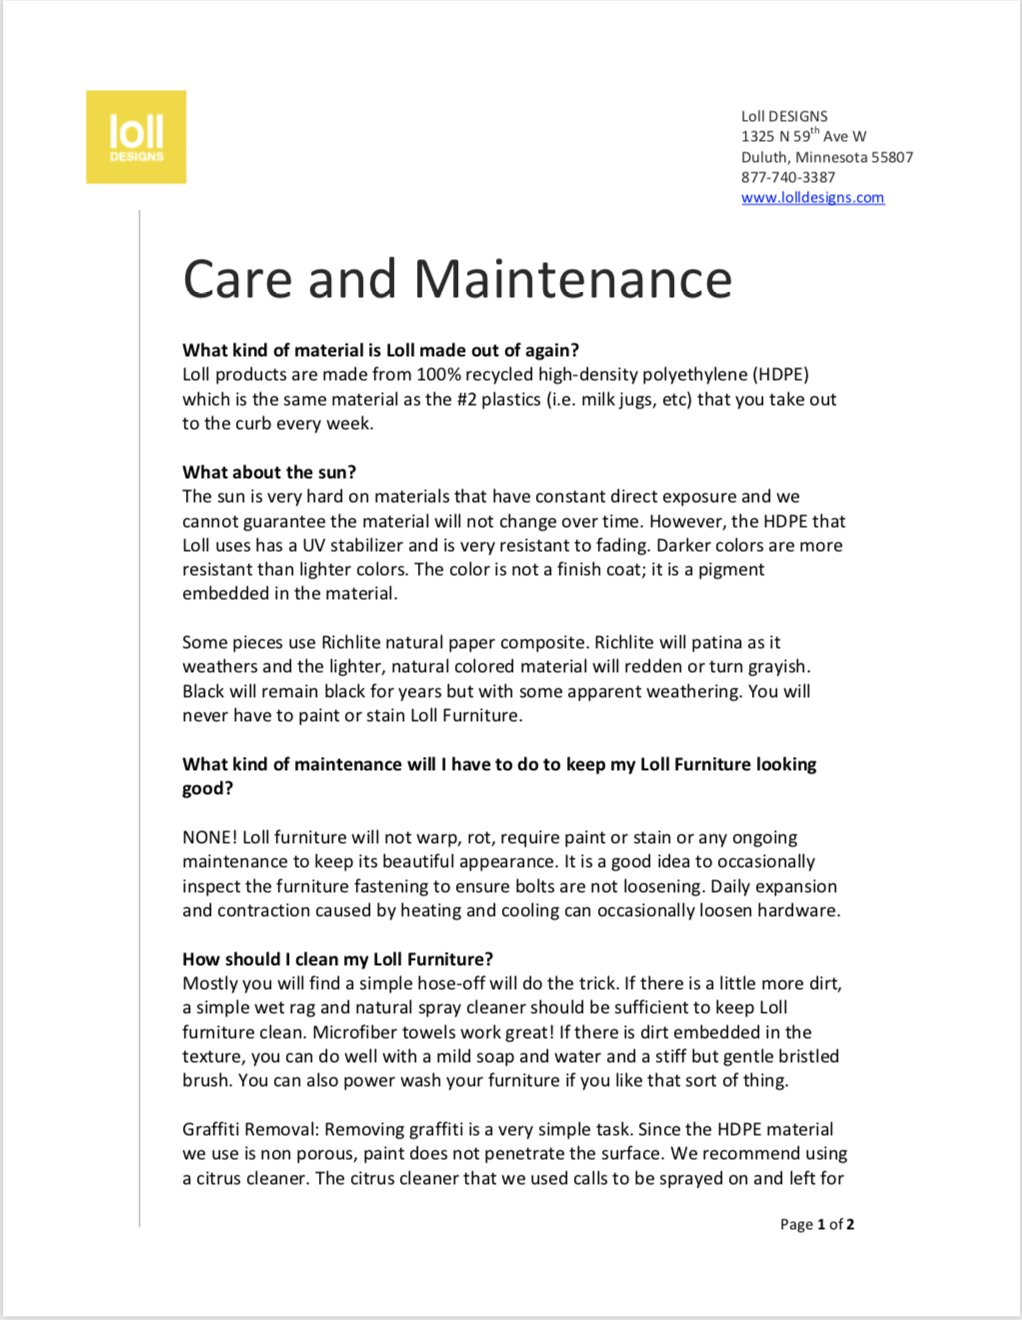 Loll Care and Maintenance Overview